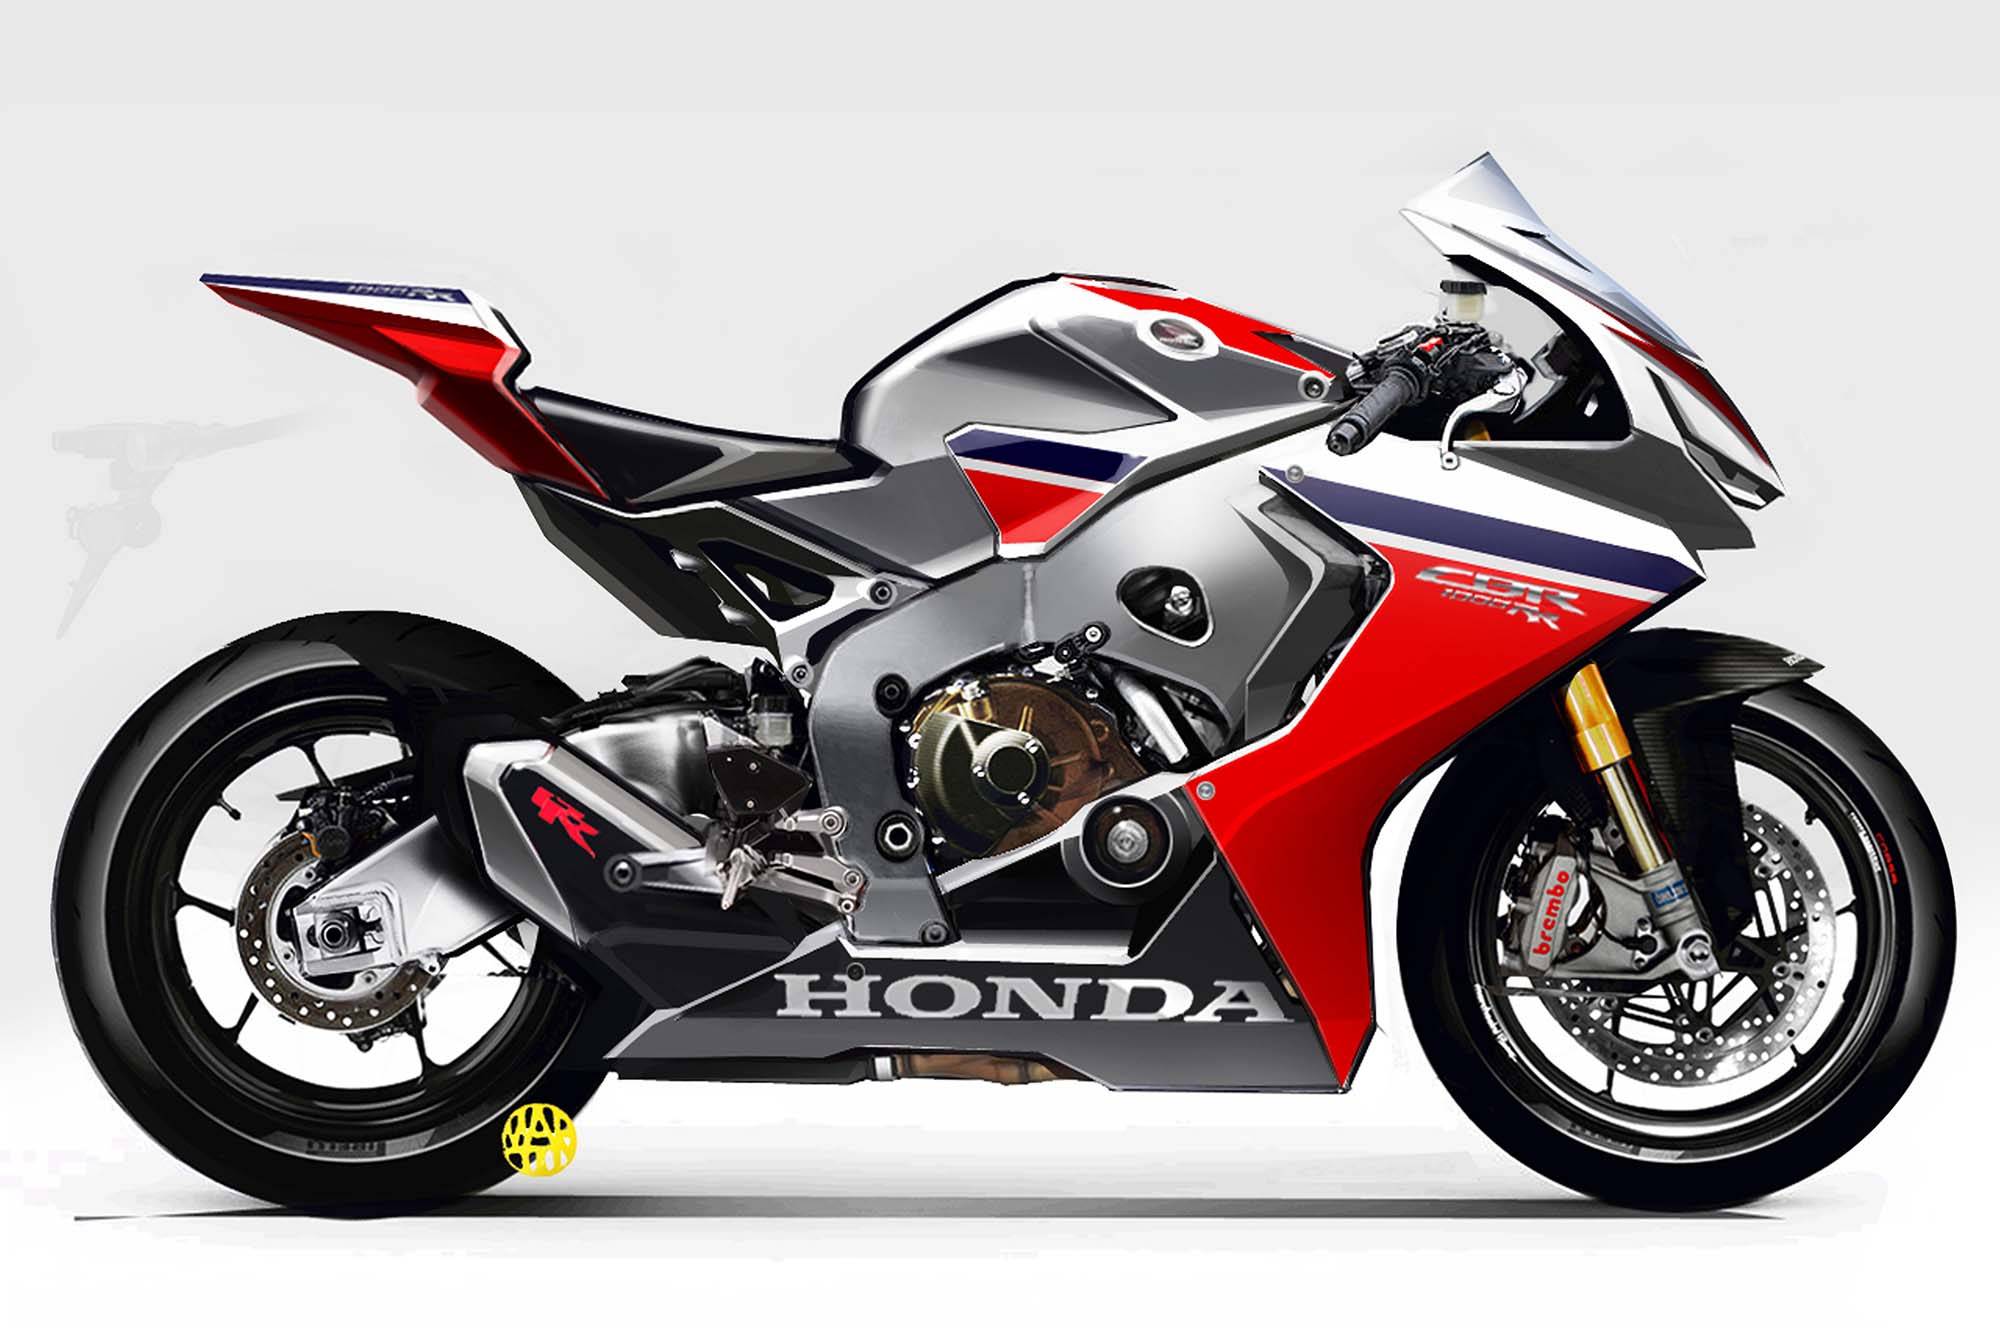 honda cbr1000rr archives asphalt rubber. Black Bedroom Furniture Sets. Home Design Ideas